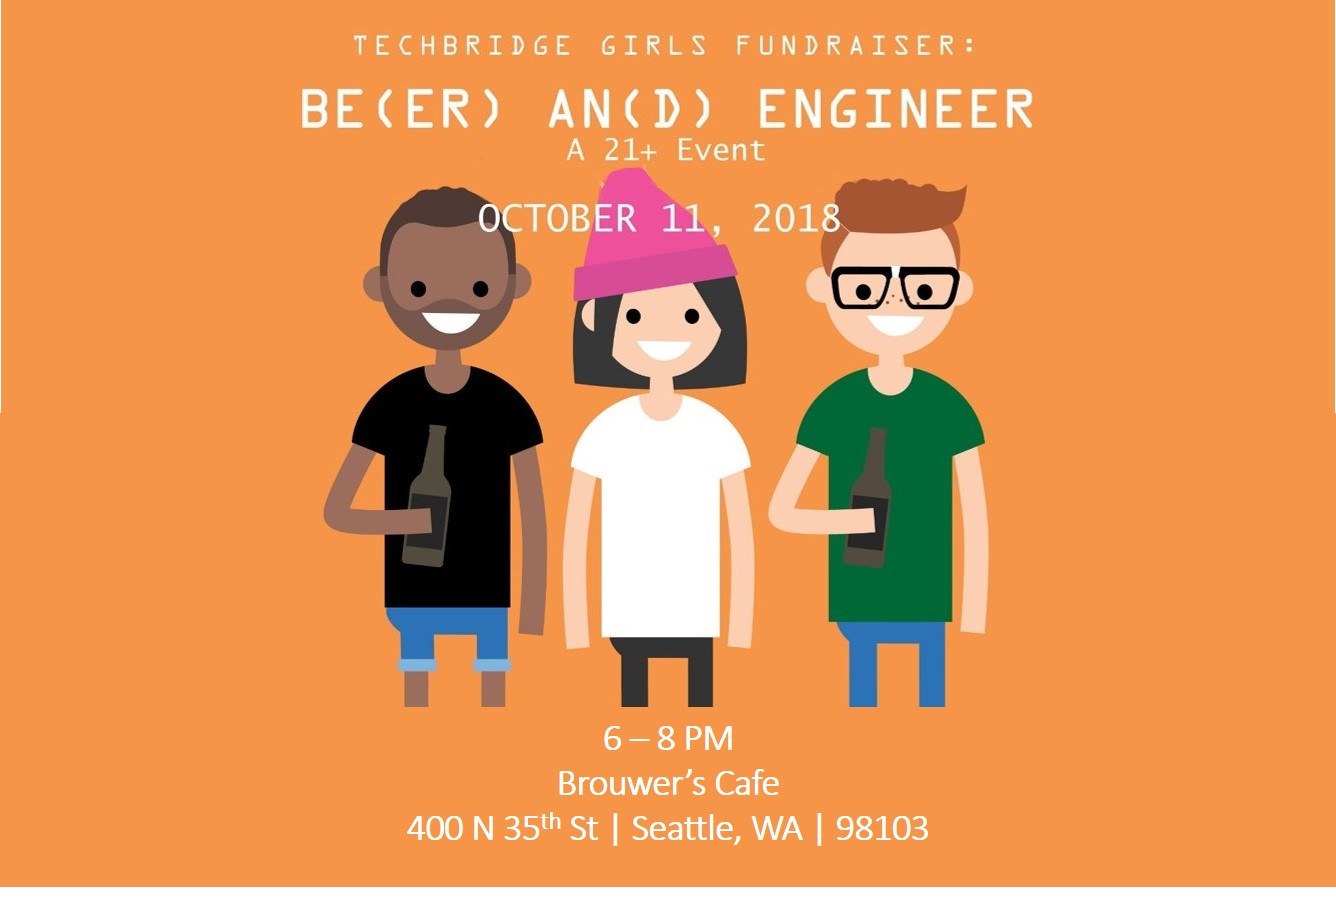 Thursday, October 11th 6-8pm, A Fundraiser for Techbridge